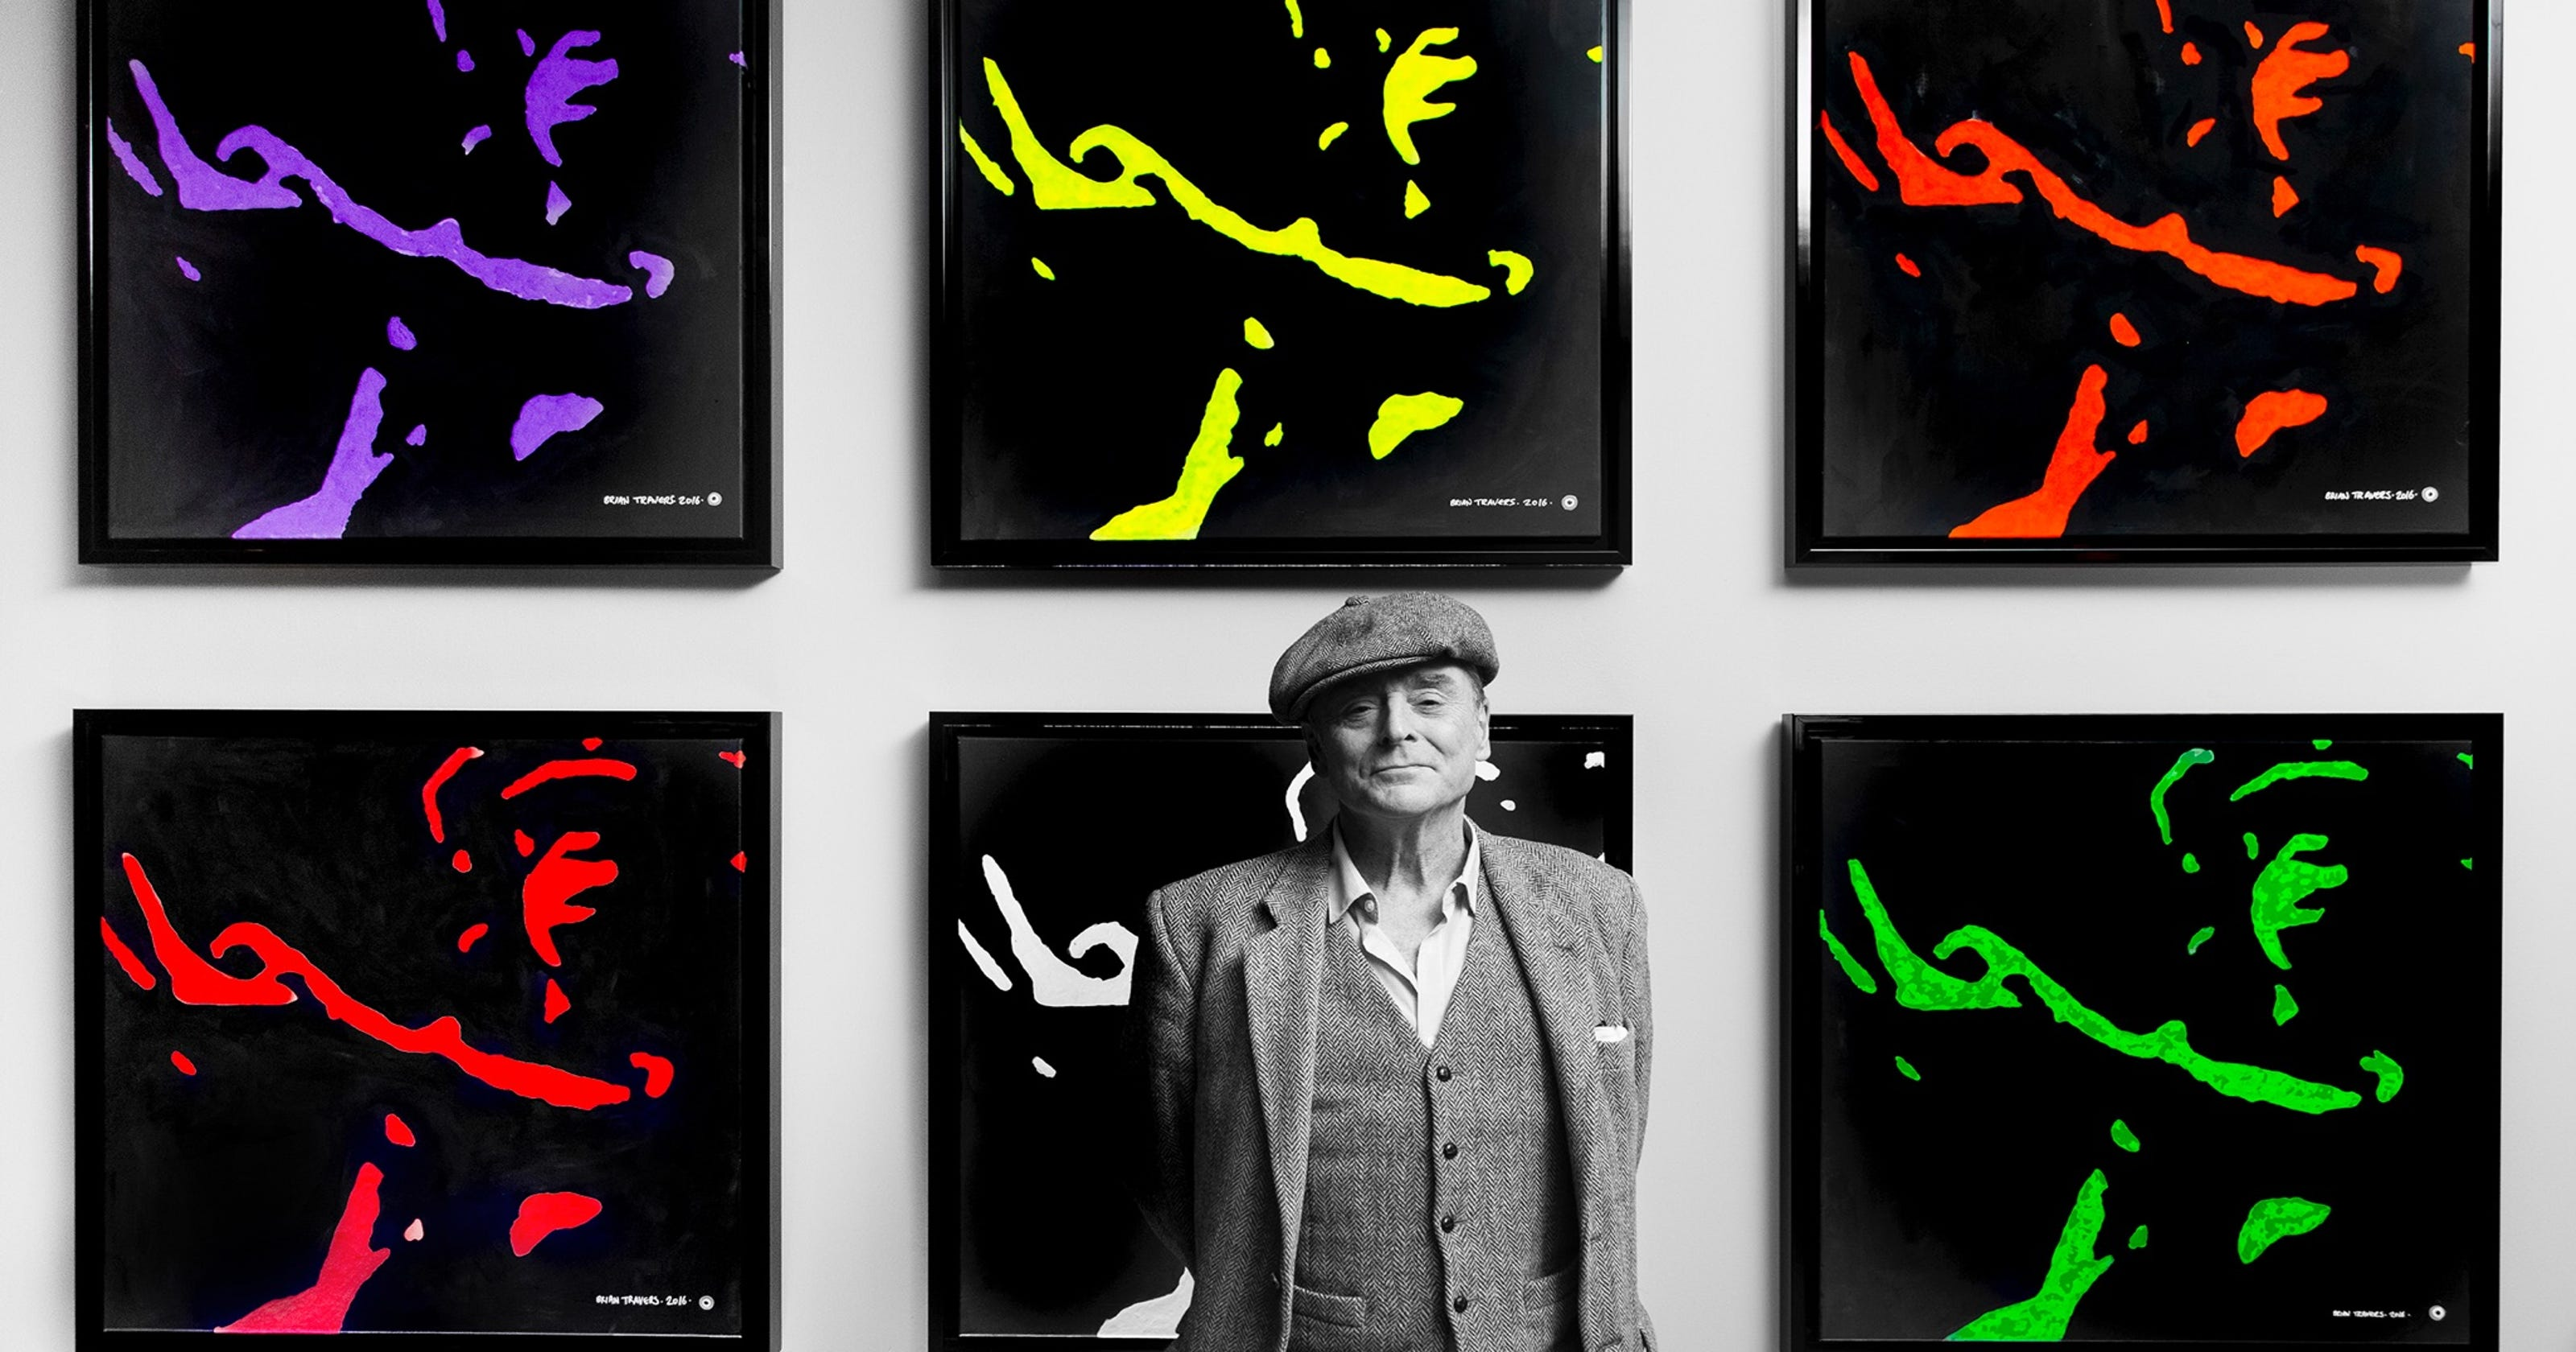 UB40 founder, saxophonist Brian Travers to show artwork at